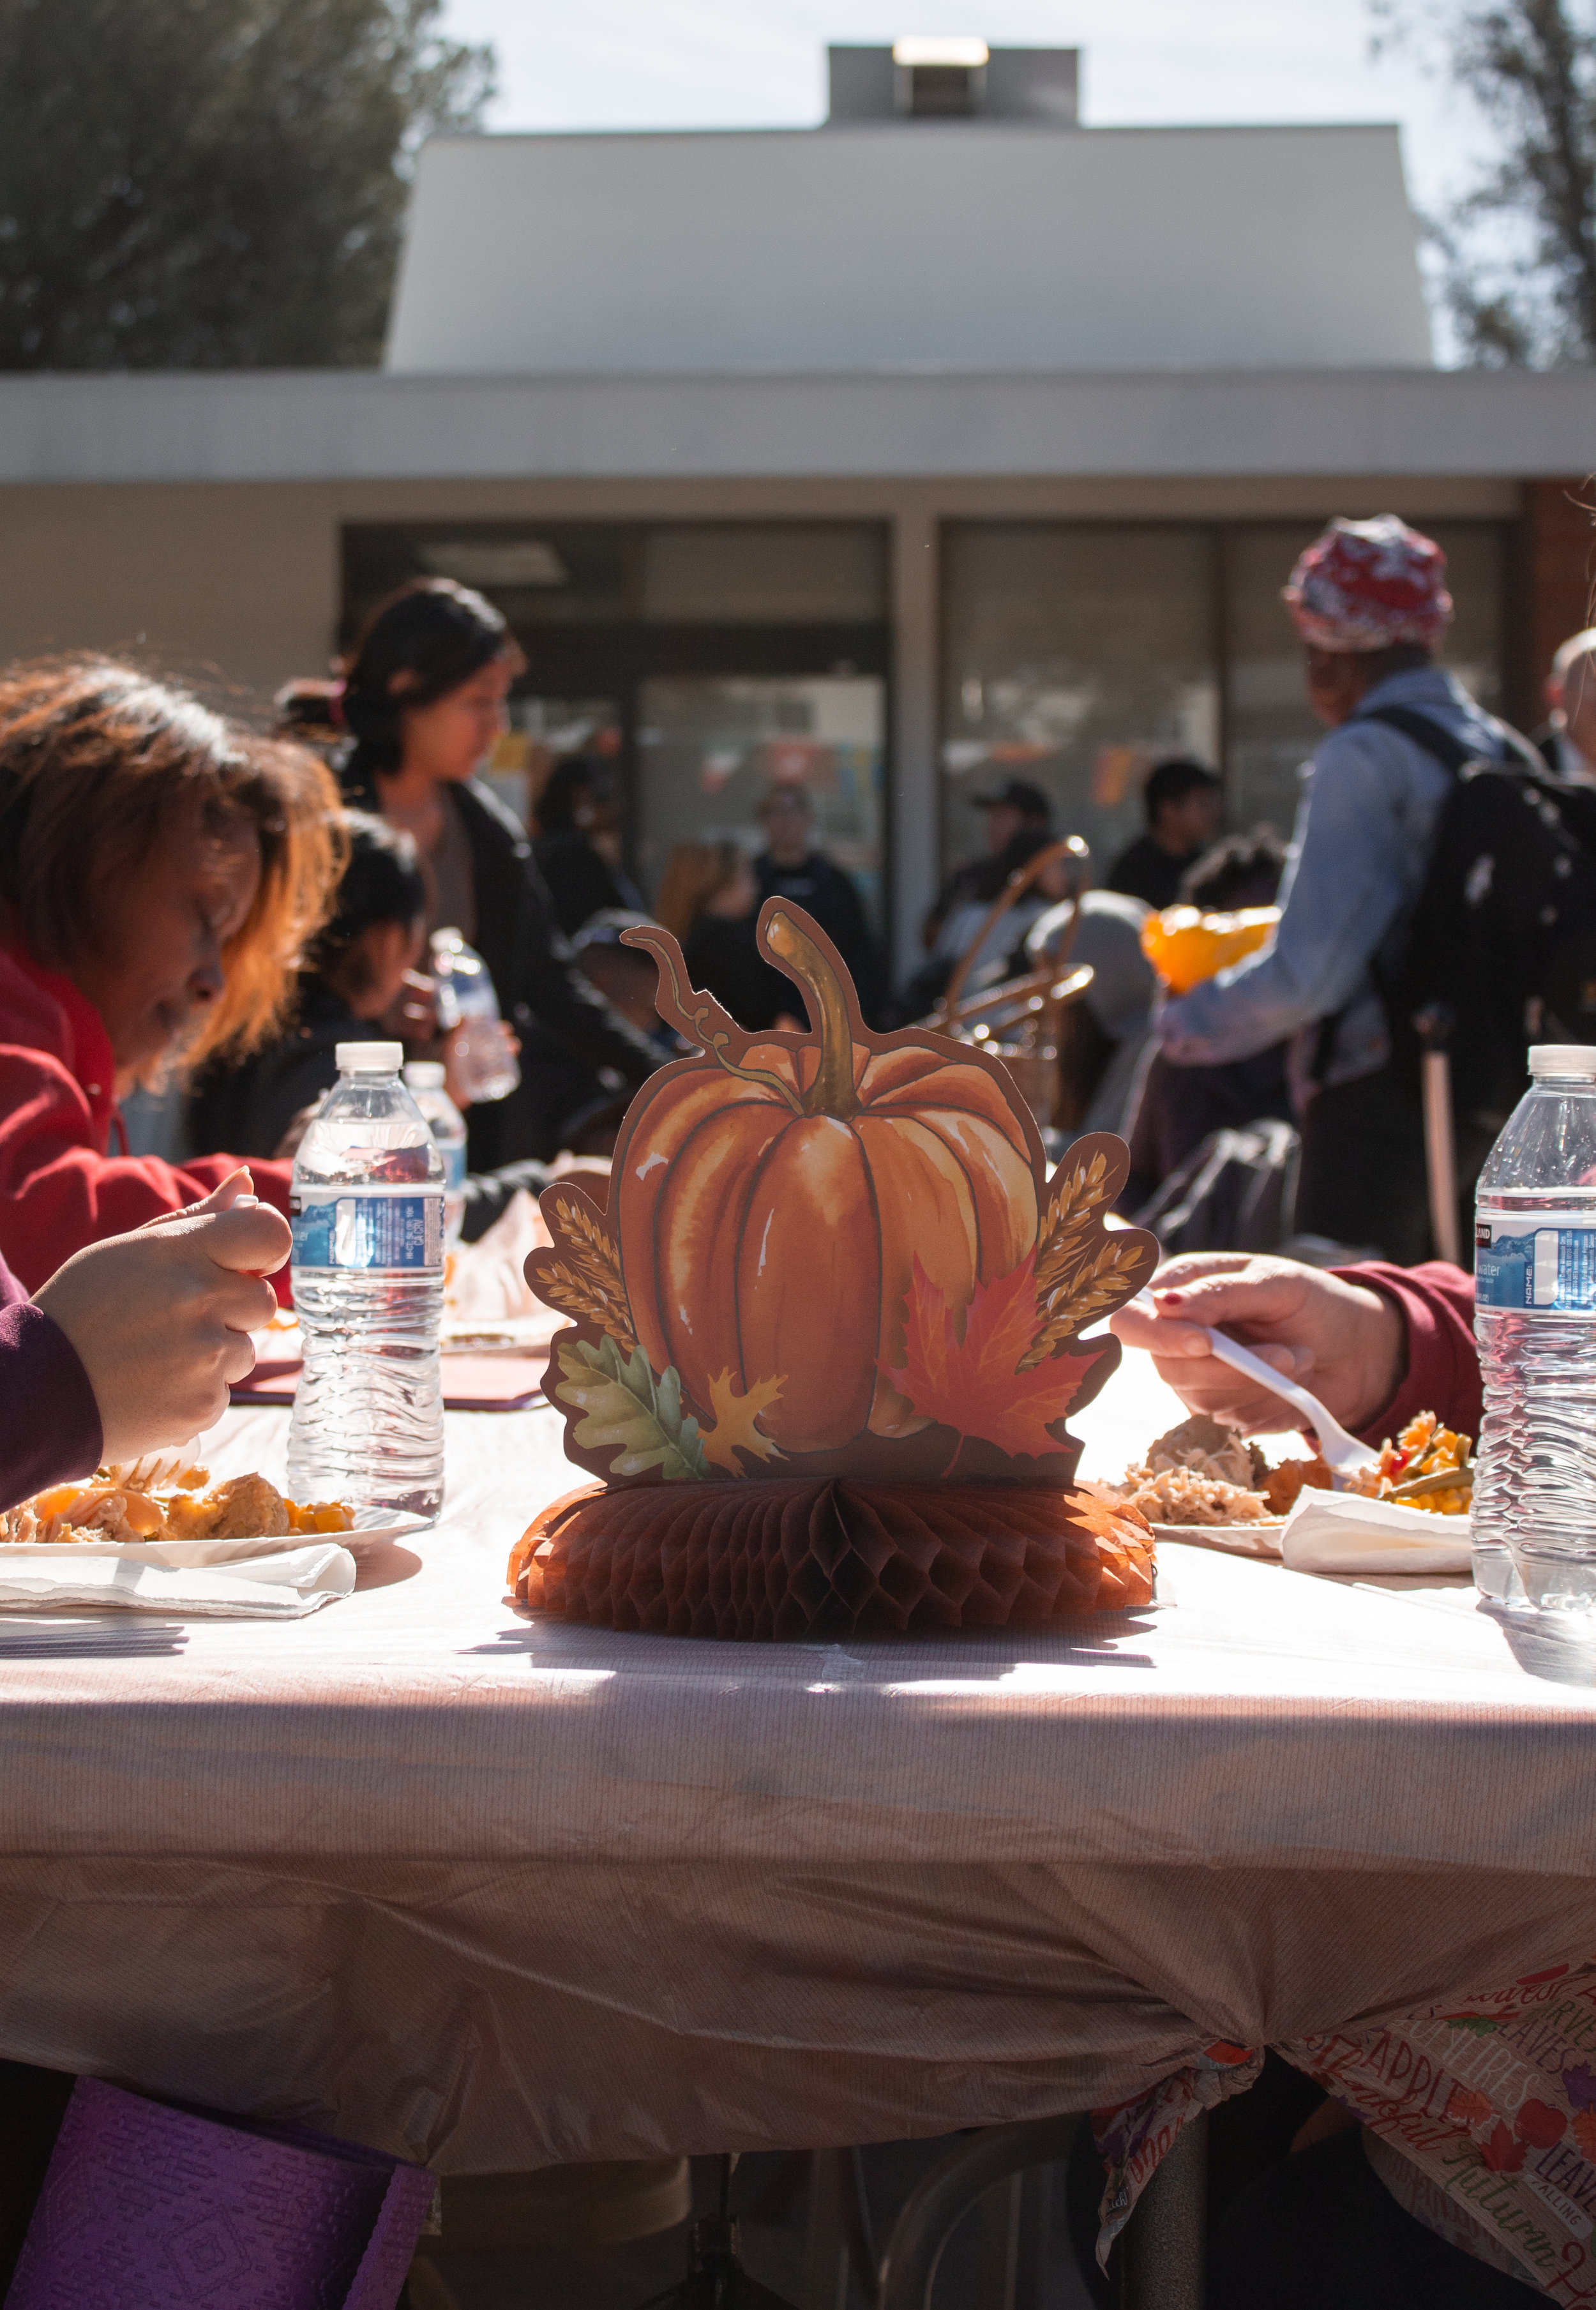 The students of Chaffey gather at a table in the quad for a Thanksgiving meal provided by Eat and Be Well. Photo Credit: Raylene Camerano